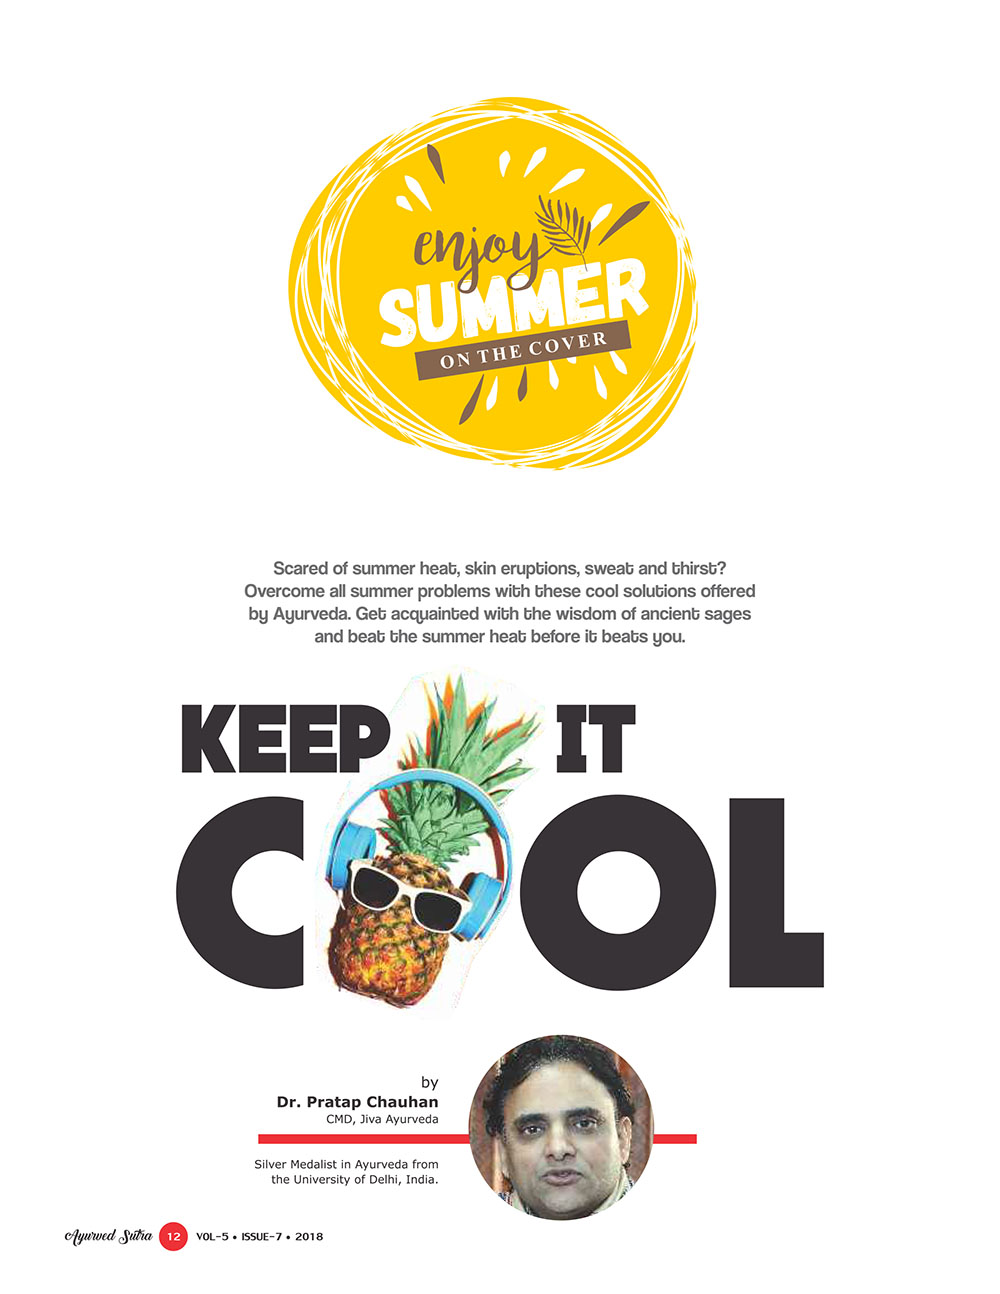 Ayurvedsutra Vol 05 issue 07 14 - Keep it Cool